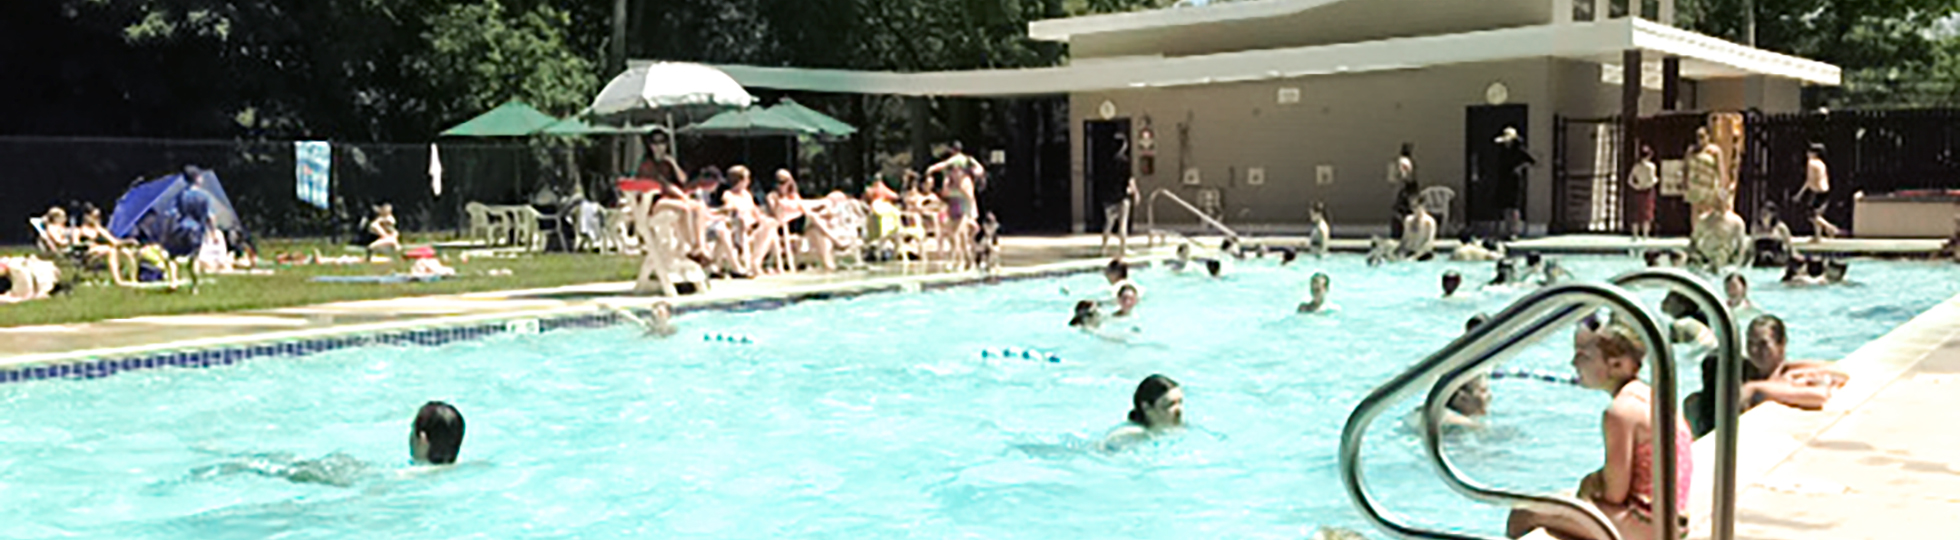 Dch Pool Parties